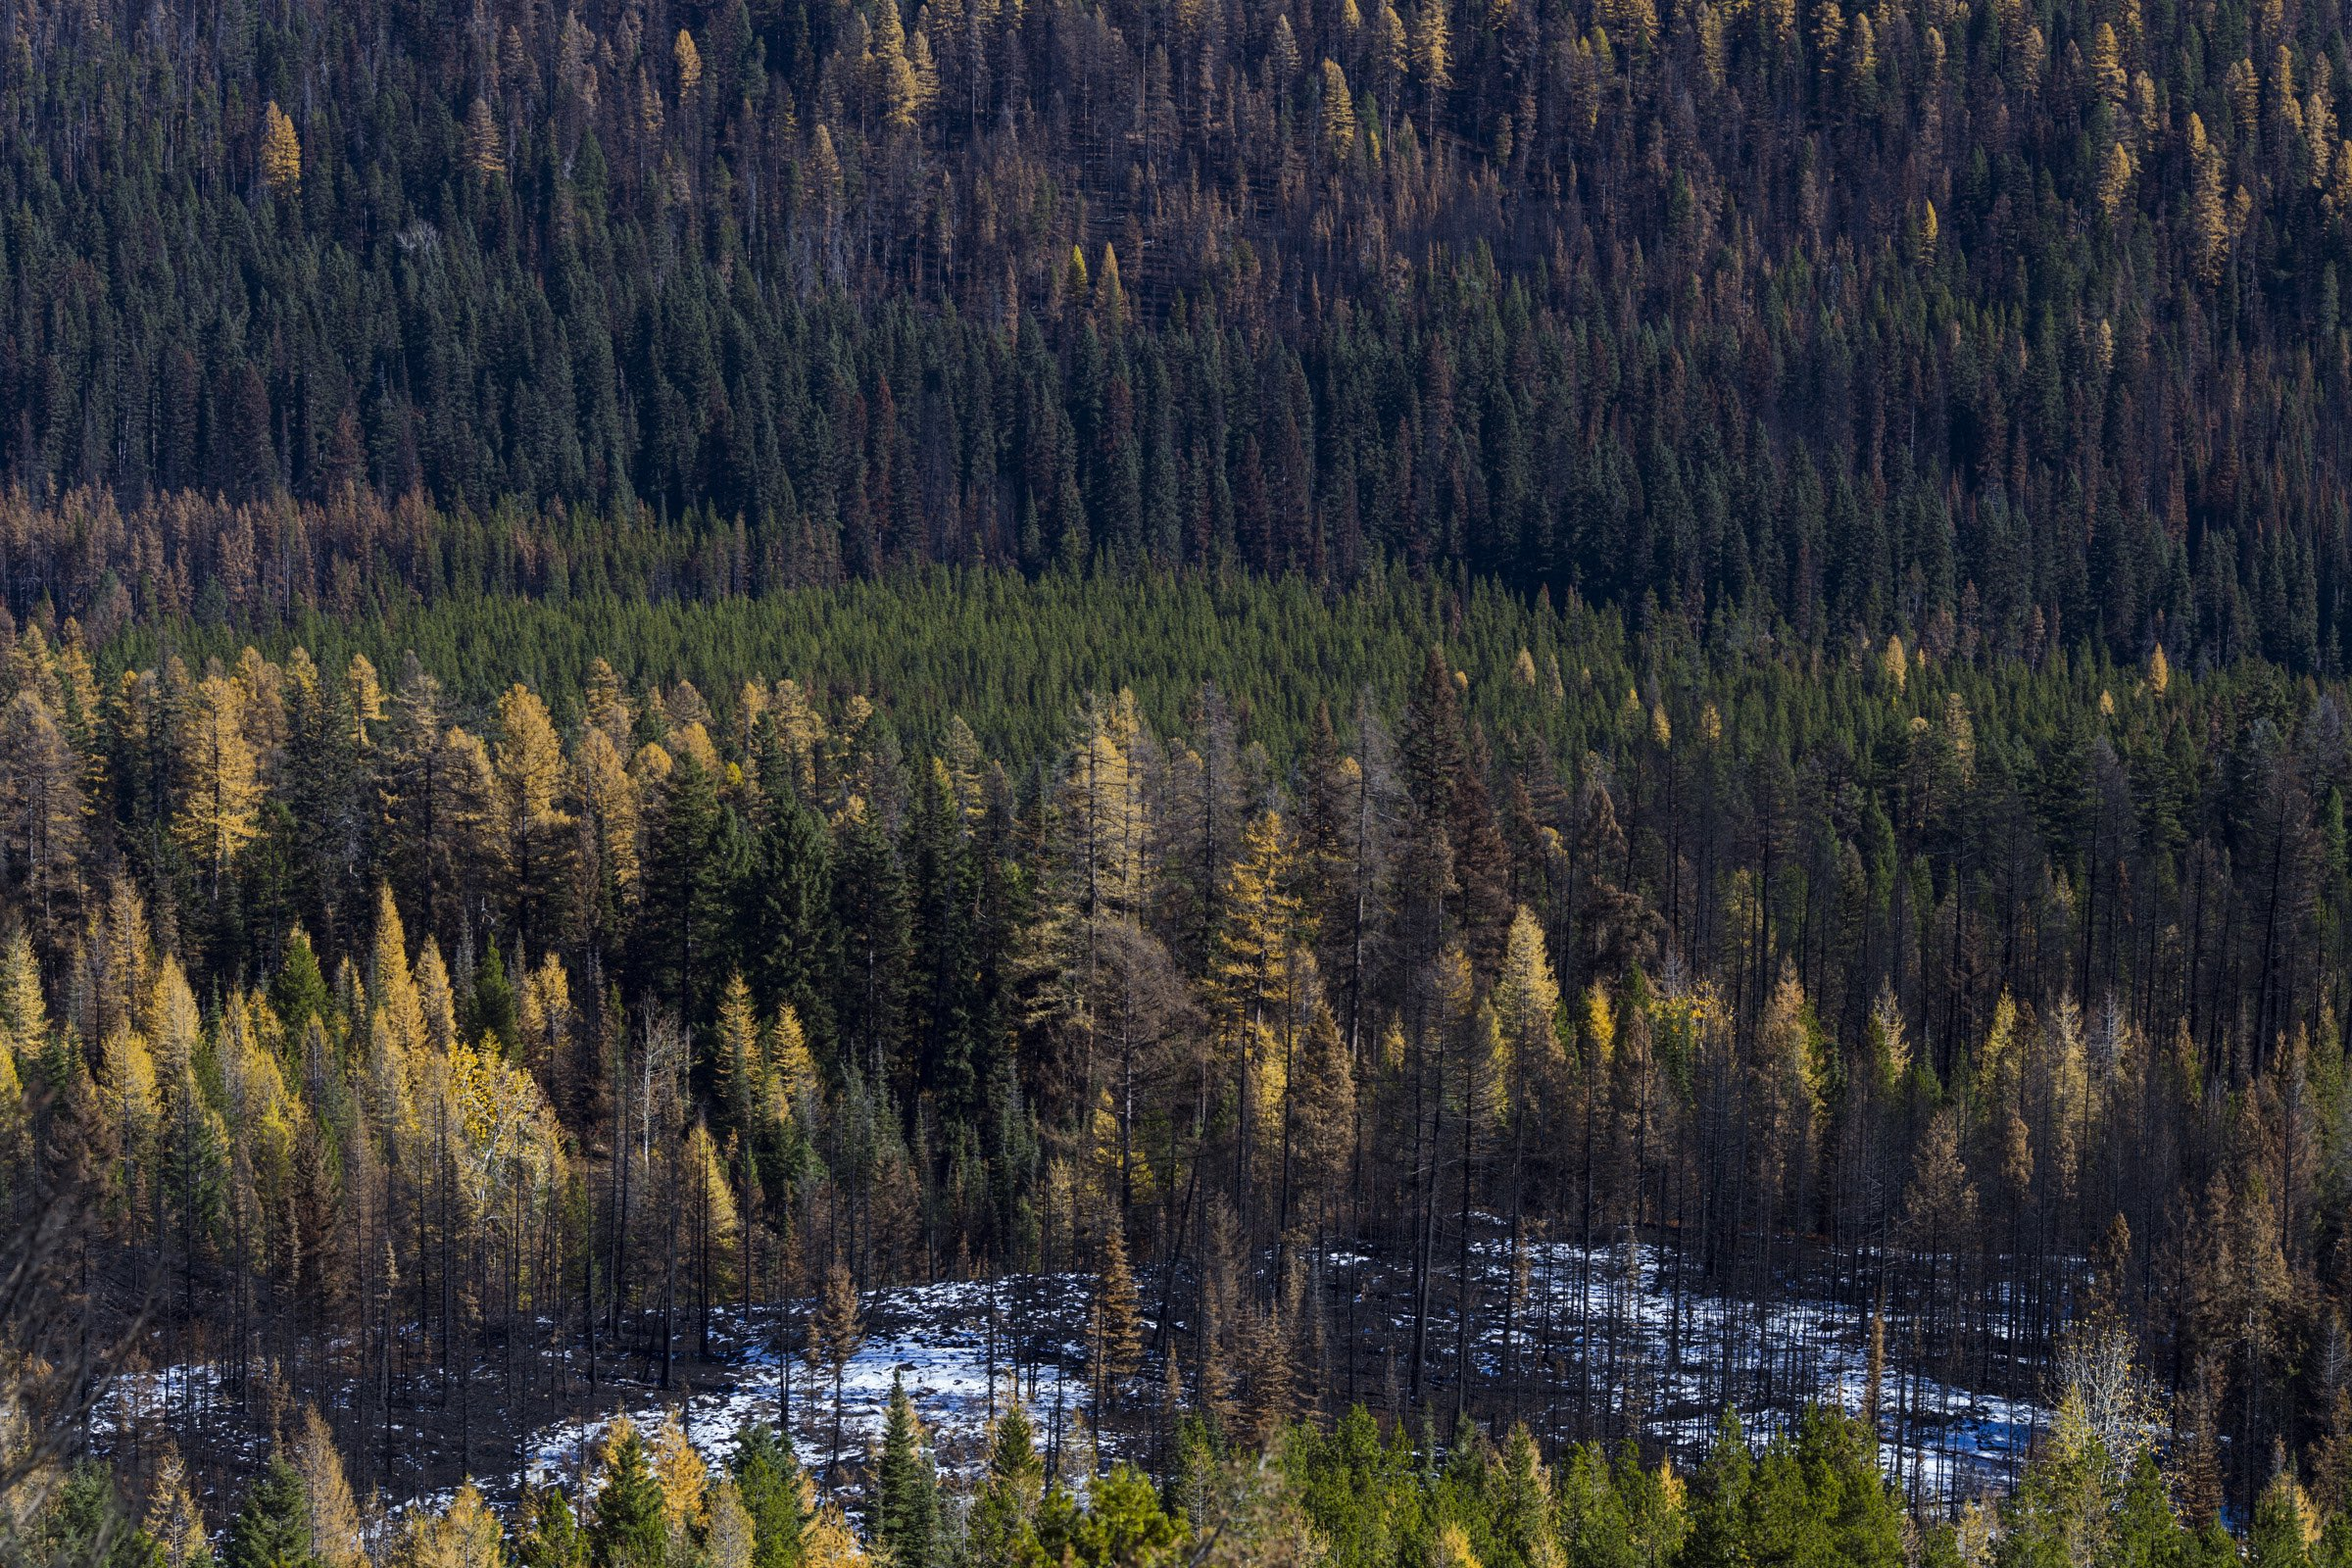 A mosaic of burned and flourishing trees is seen following the Rice Ridge Fire in a forest outside of Seeley Lake, Montana, on Thursday, October 29, 2017. (Photo by Brittany Greeson)